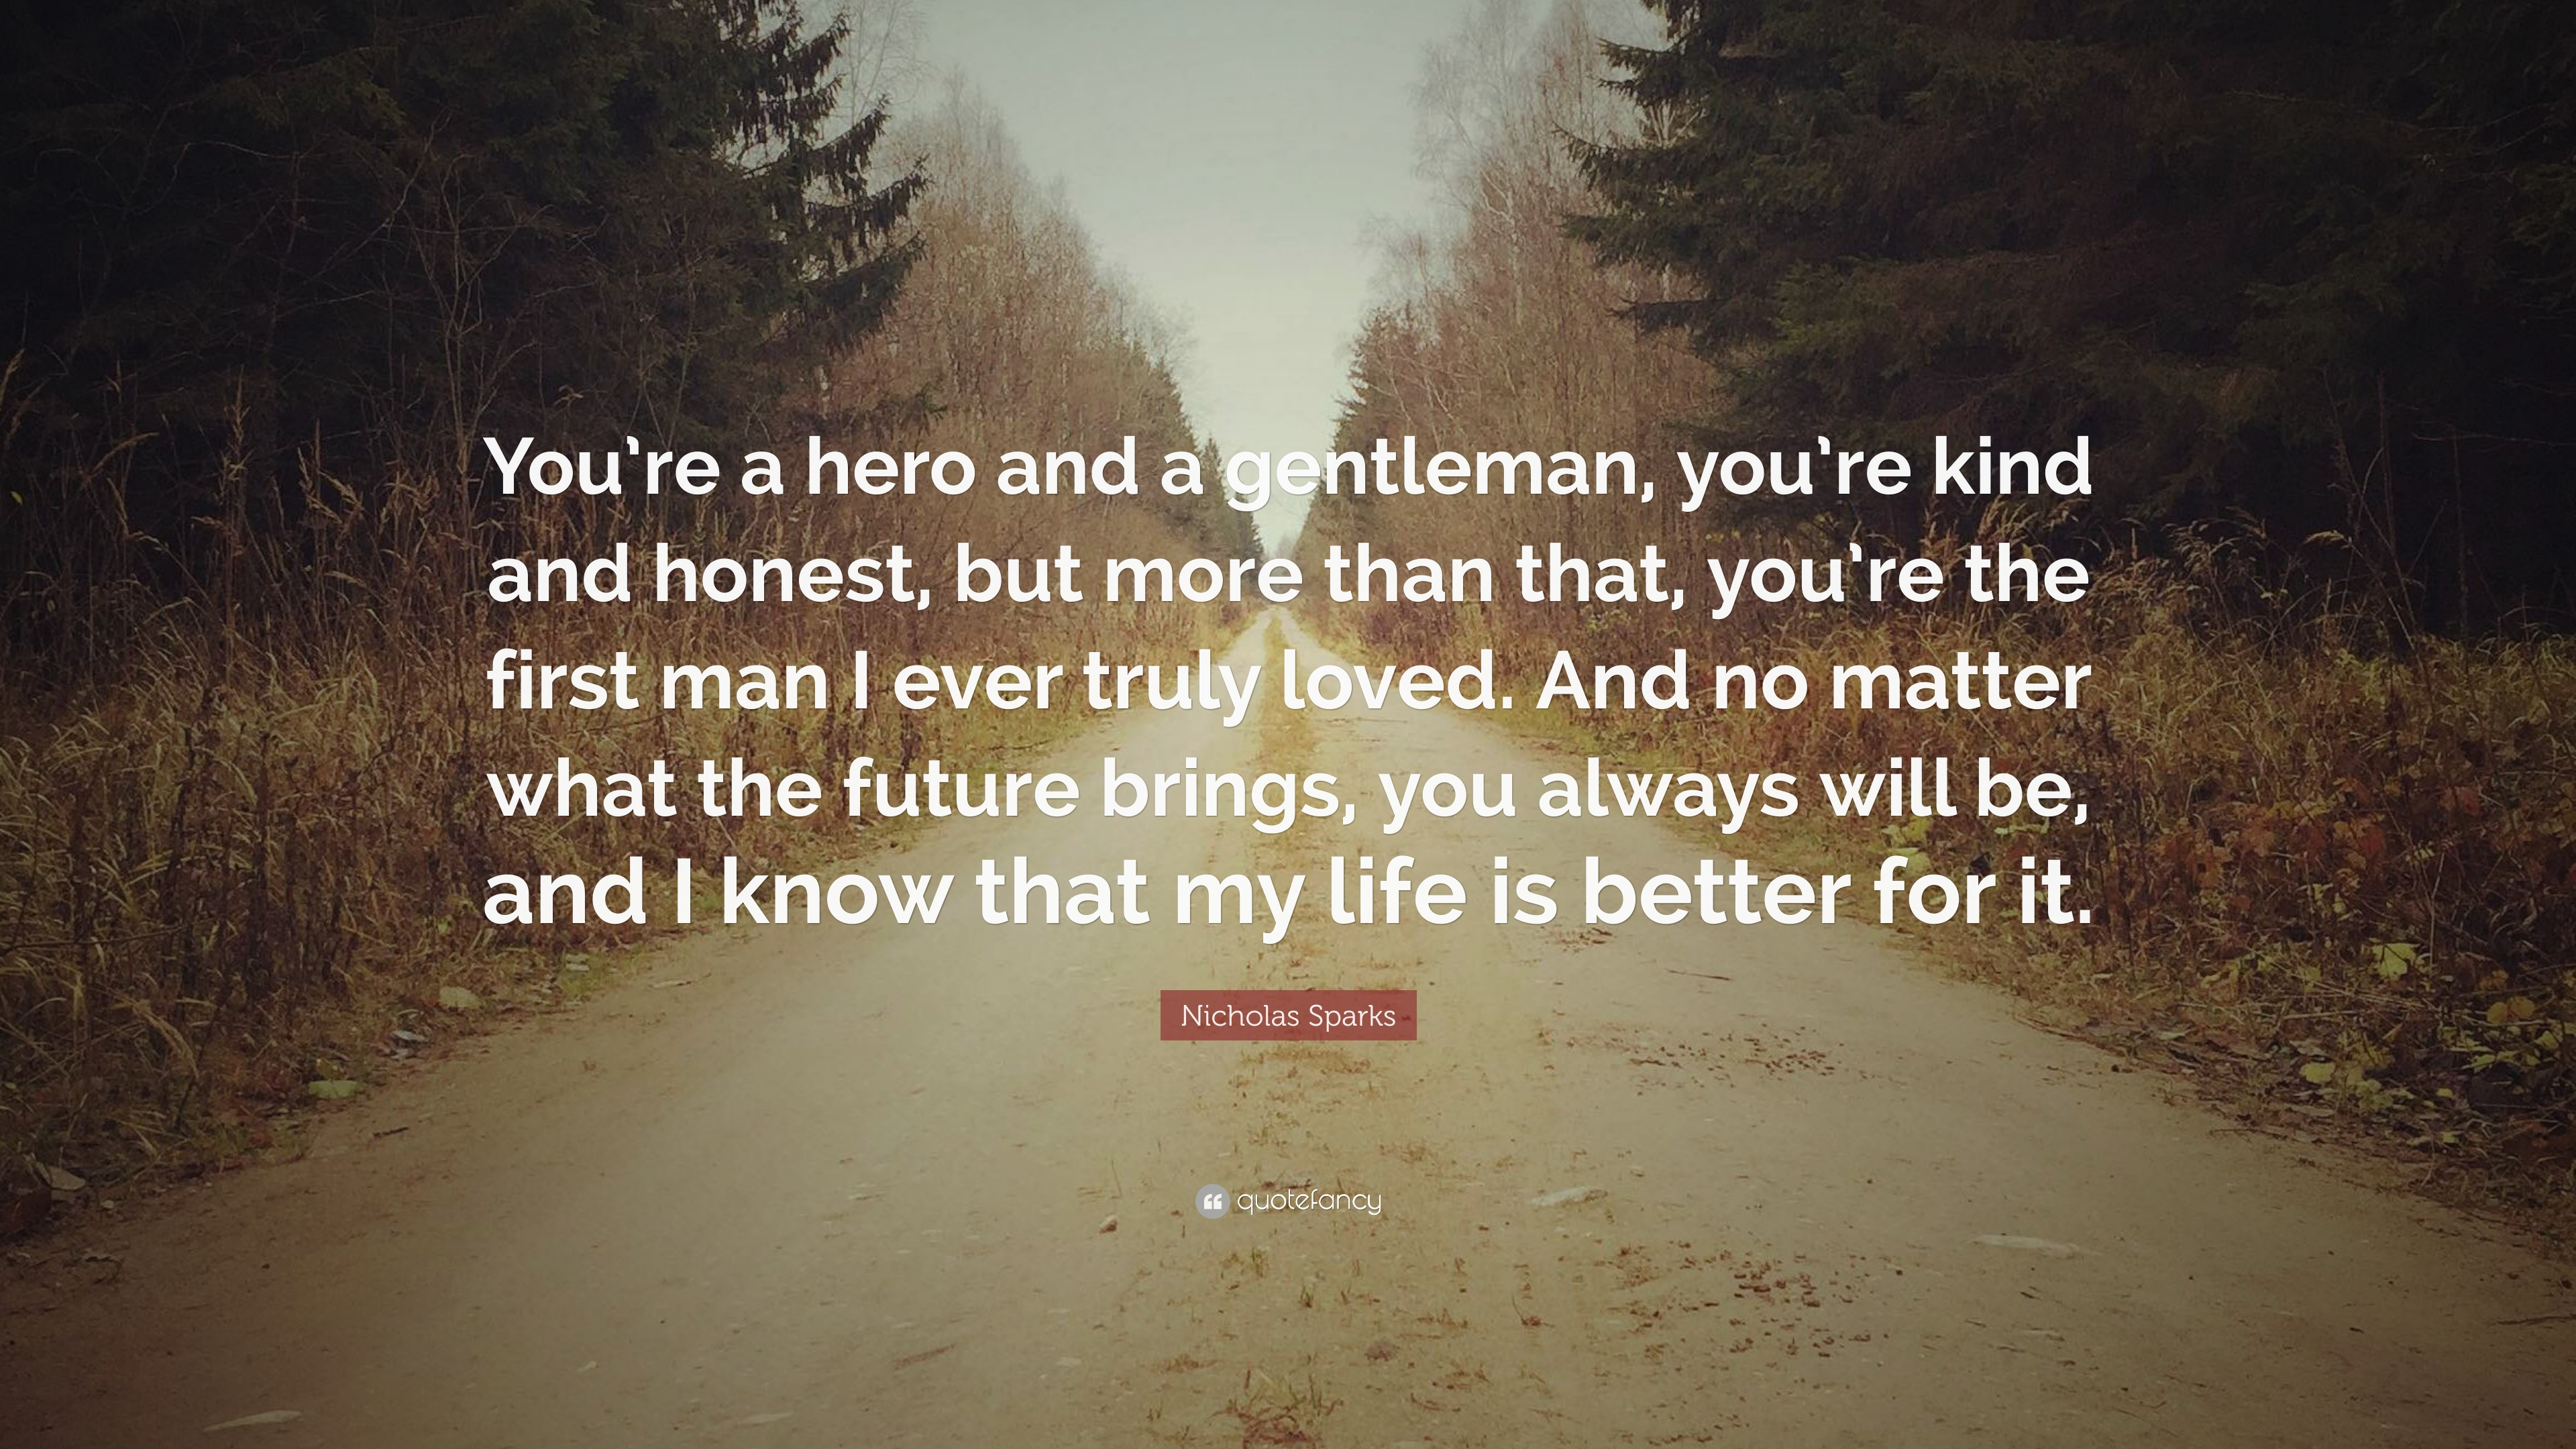 Nicholas Sparks Quote Youre A Hero And A Gentleman Youre Kind